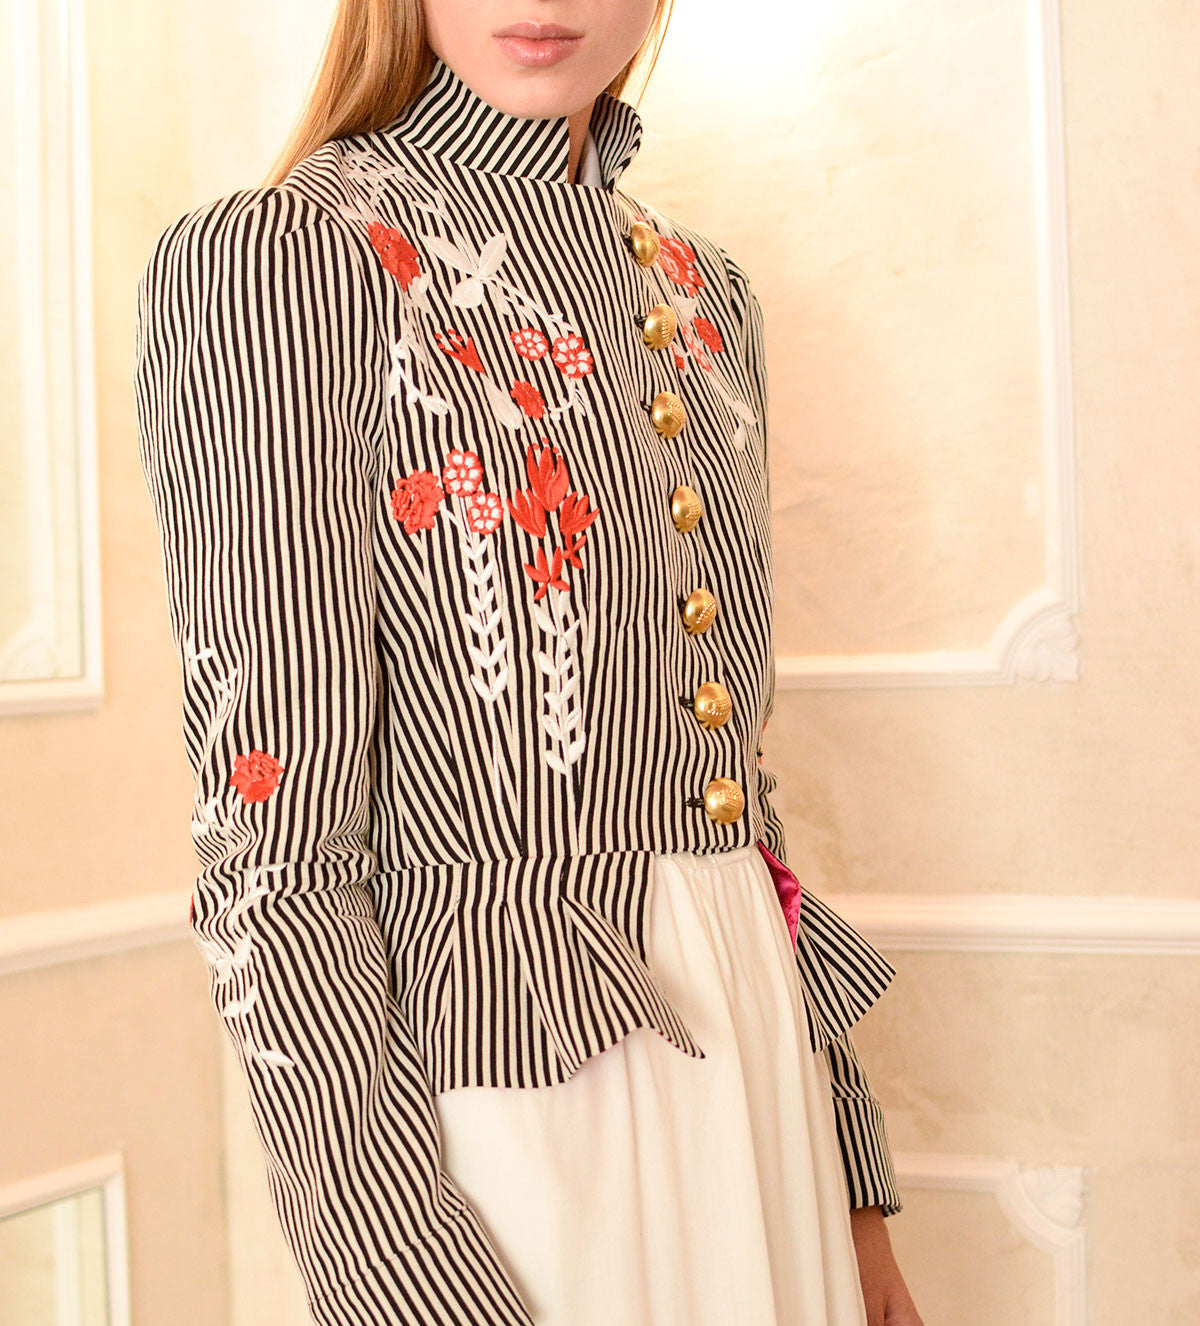 Embroidered with gold stars and shields, our Cortés Parches jacket is one of our most aristocratic jackets.